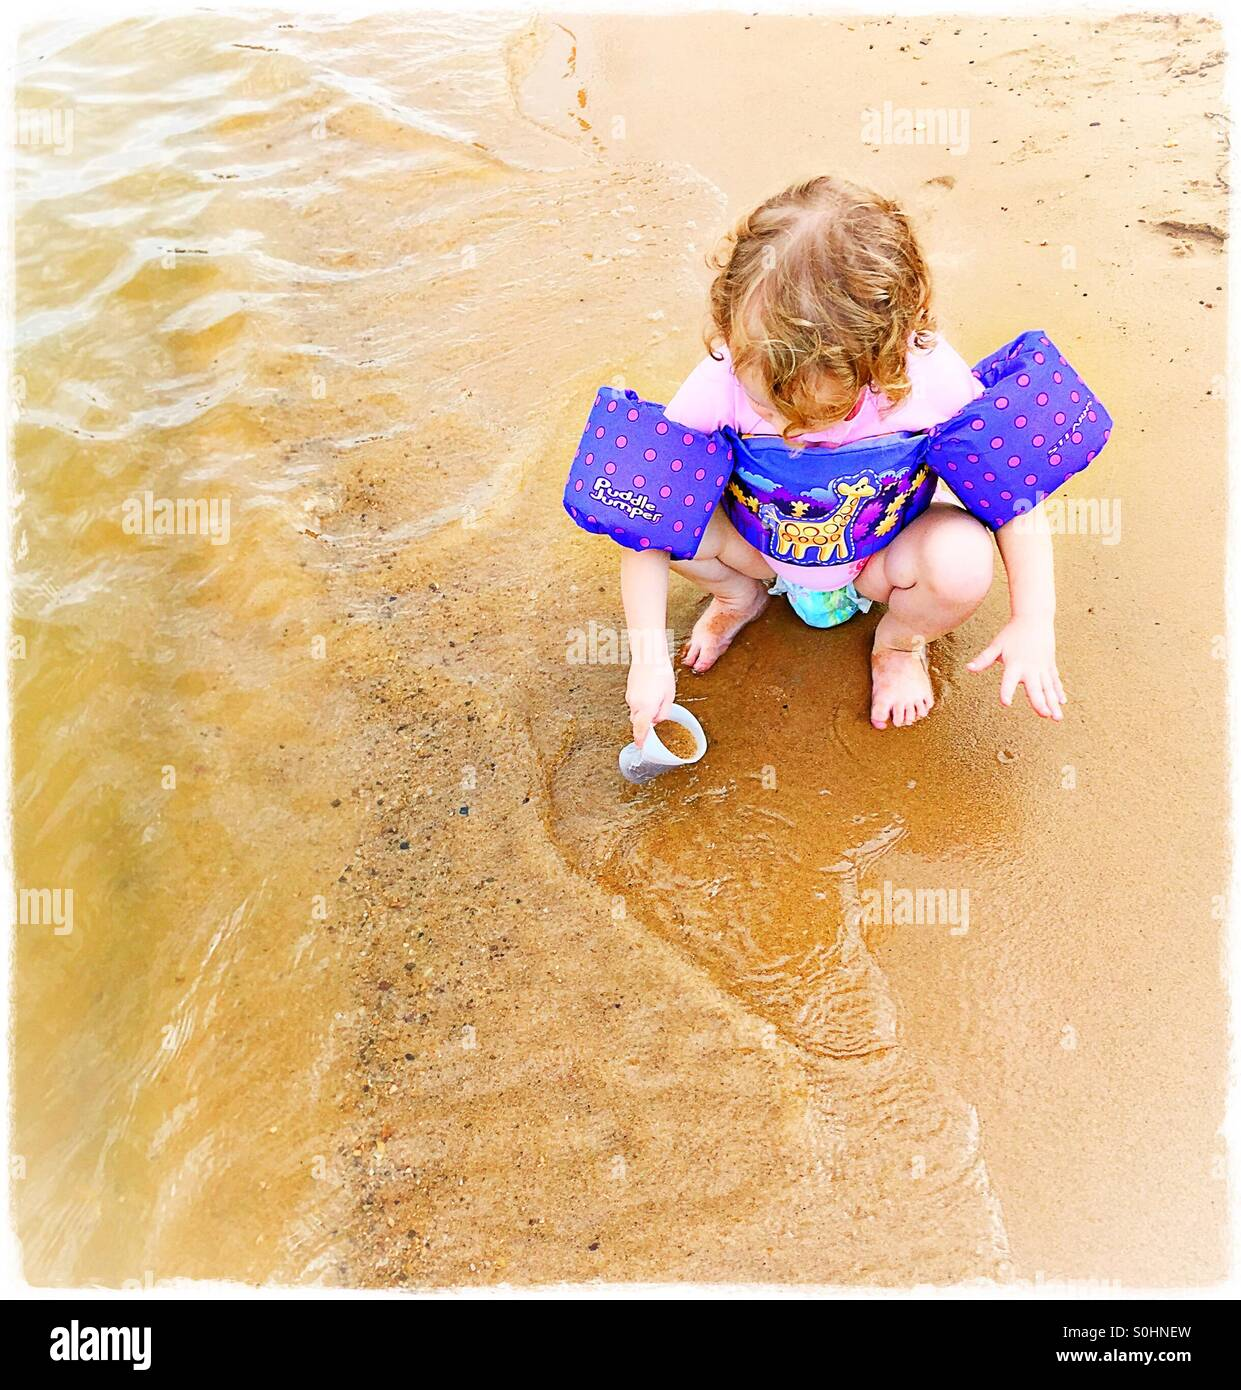 Toddler playing at the beach Photo Stock